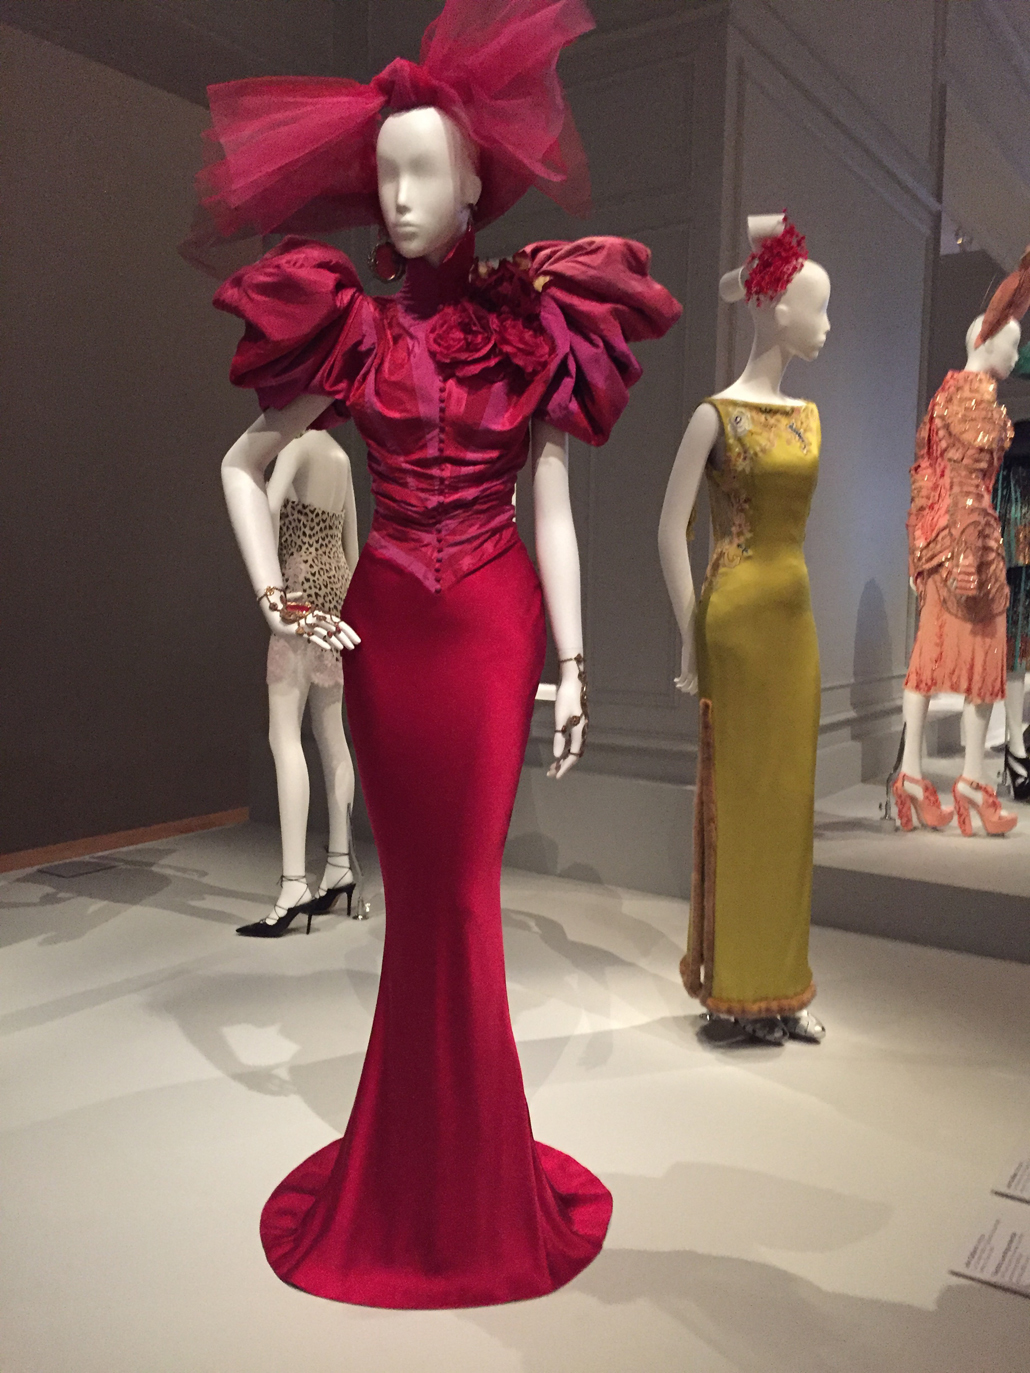 Installation photo exhibition, Dior: The House of Dior Seventy Years of Haute Couture by Carolyn McDowall